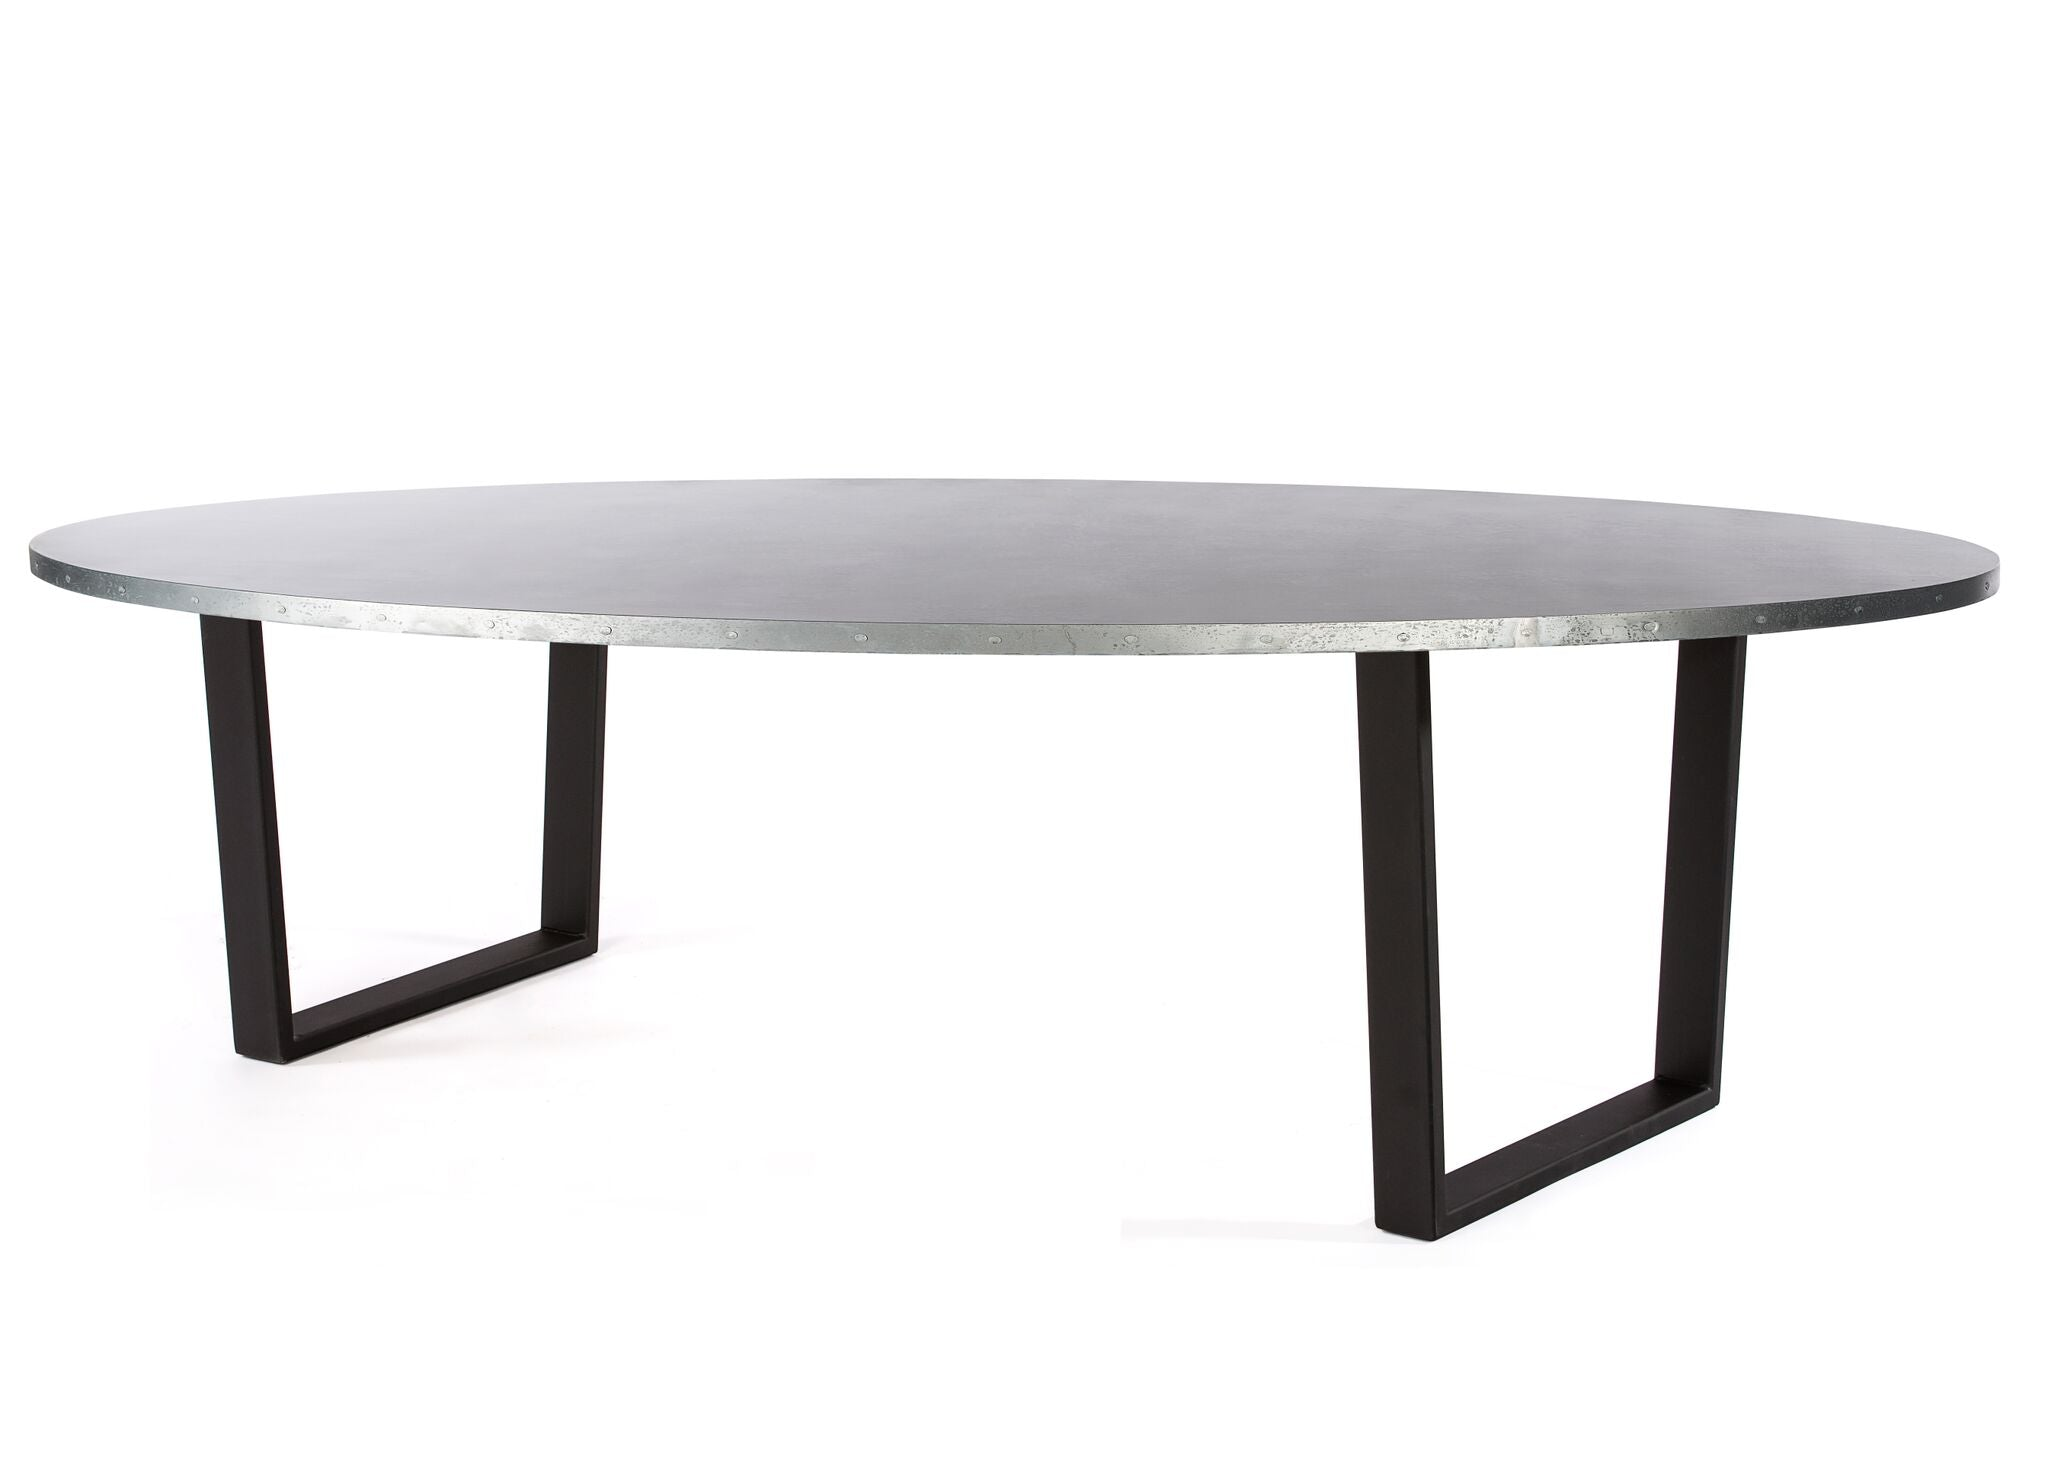 "Zinc Oval Tables | Trenton Table | CLASSIC | Black on Steel | CUSTOM SIZE 84""L 39""W 30""H 